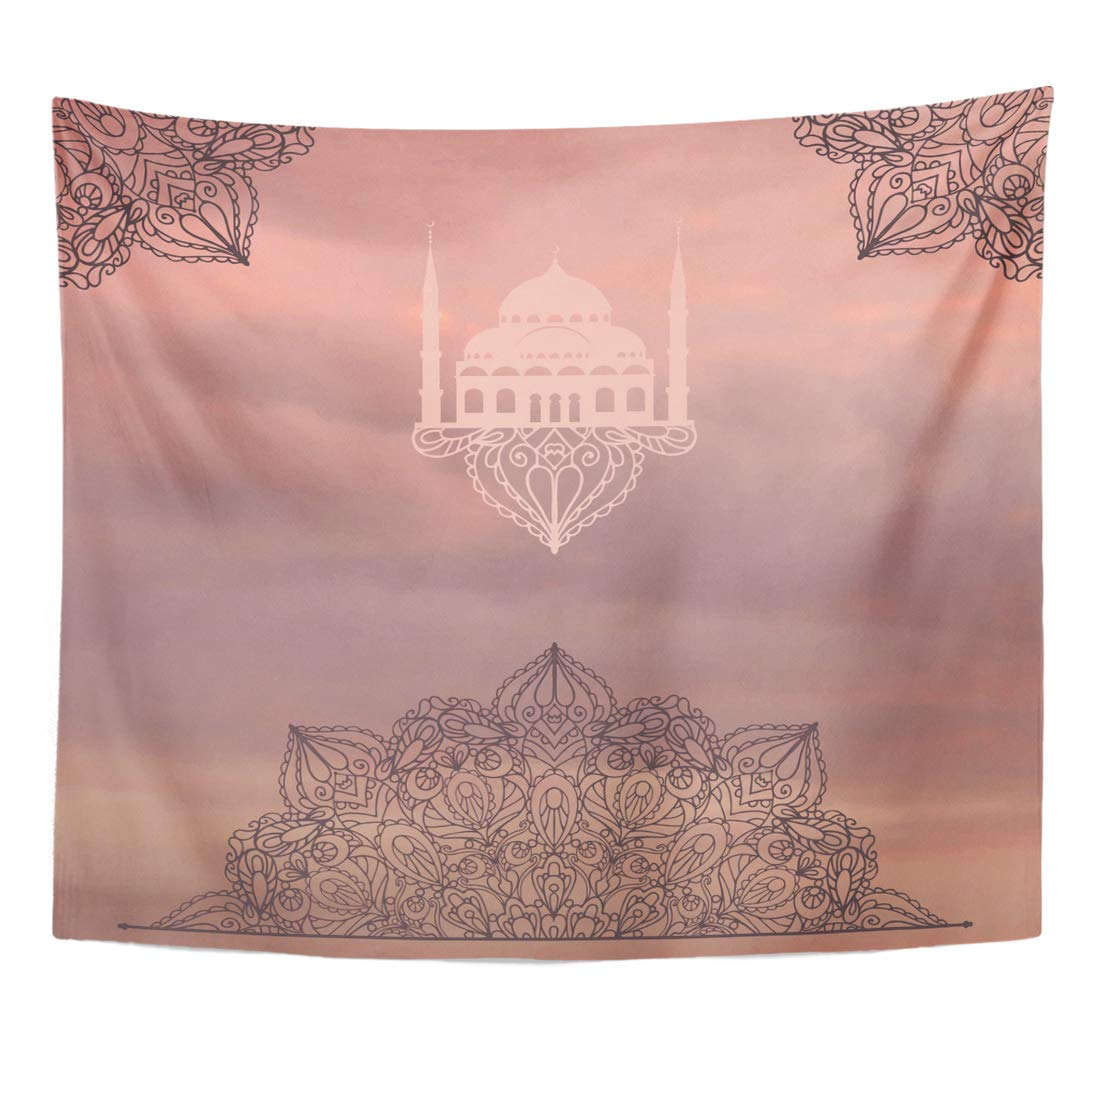 Angoni Tapestry Arabic Mandala Vintage Sunset Sky East Indian Thai Motifs Ethnic Orient Symmetry Lace Holiday Dusty Home Decor Wall Hanging for Living Room Bedroom Dorm 50x60 inches